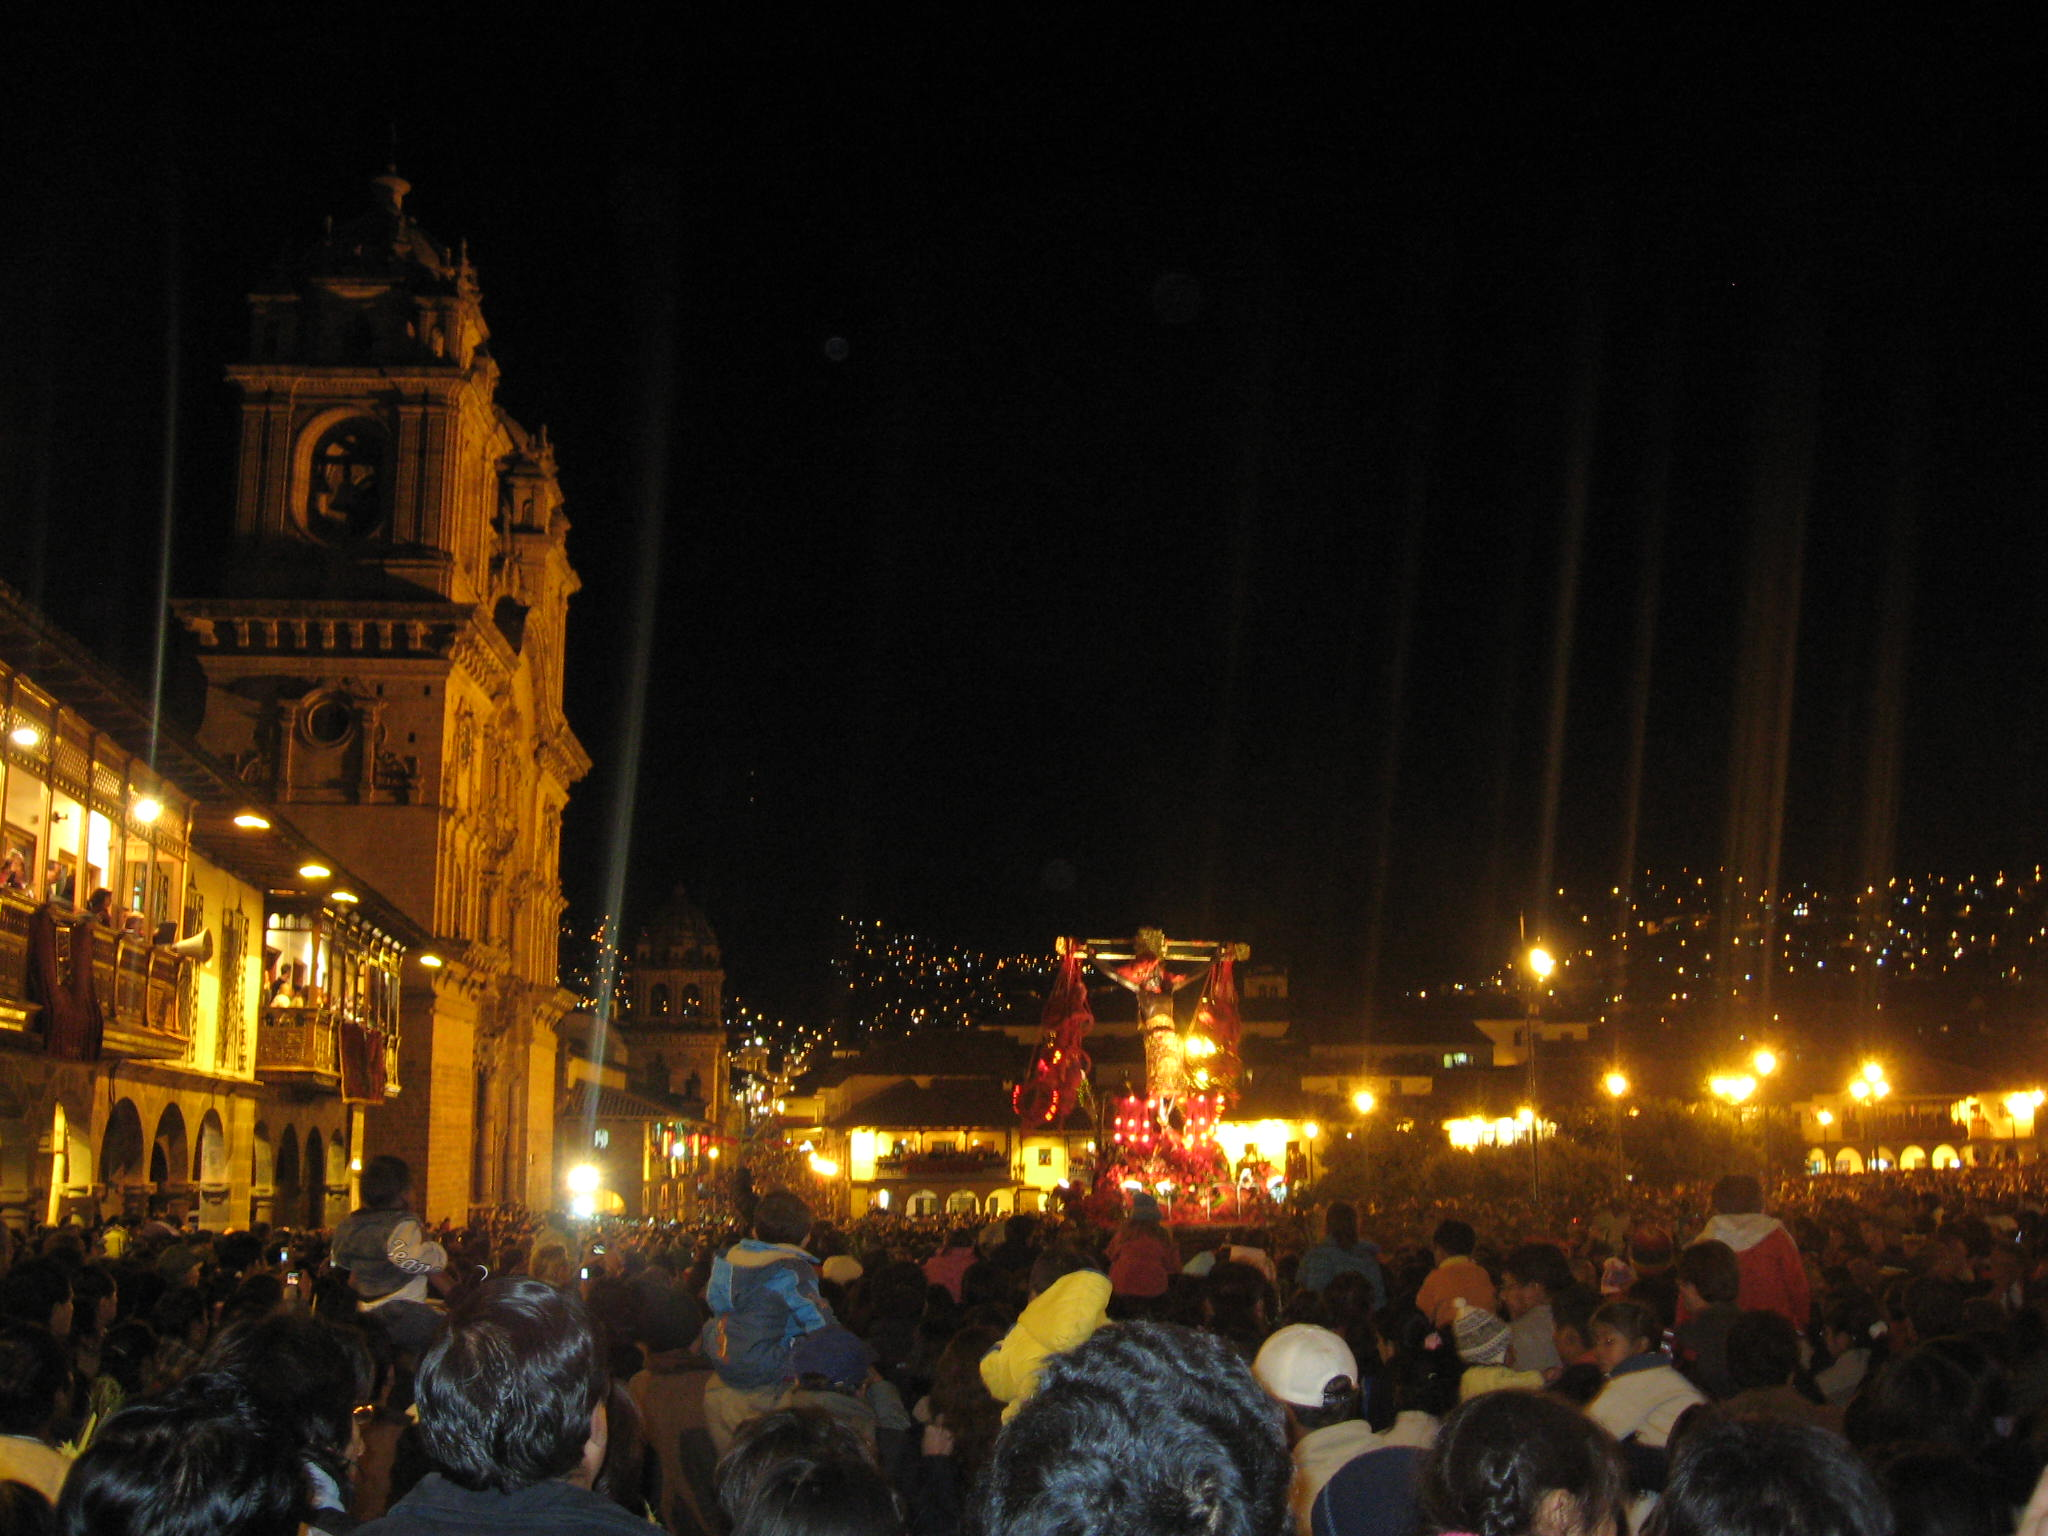 Crowd waiting for Señor de los Temblores